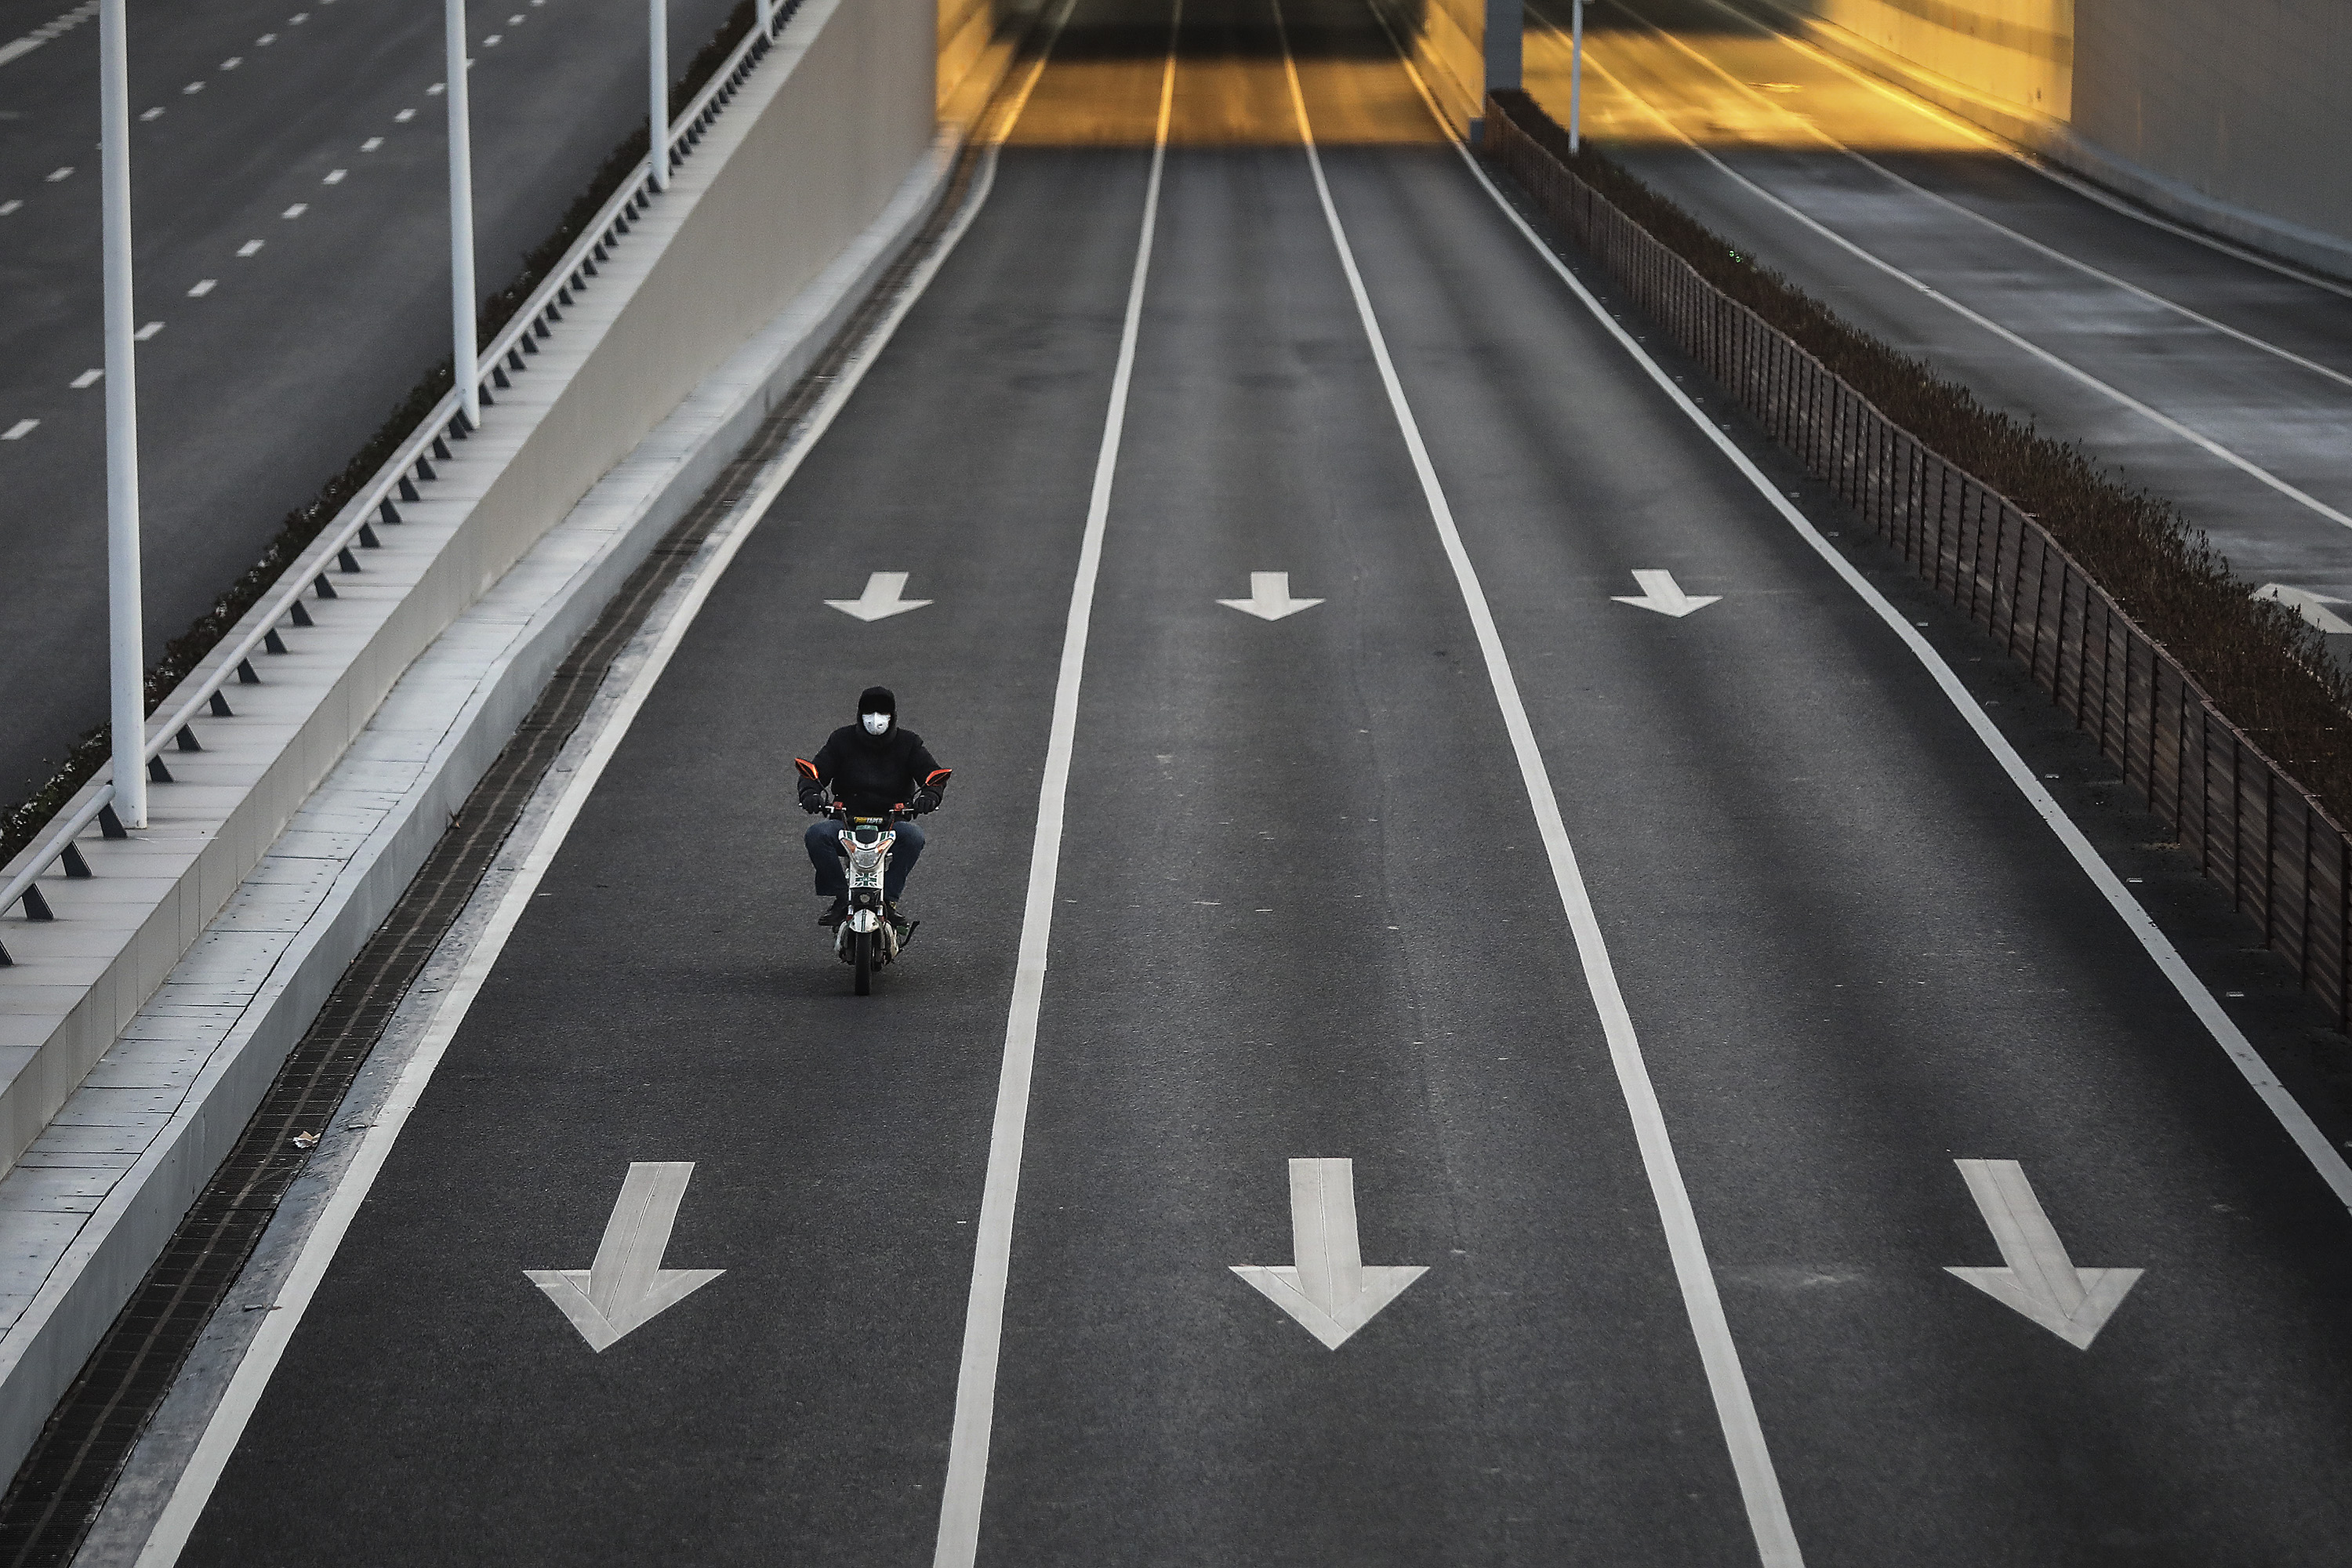 A man cycles on an empty street at Optical Valley in Wuhan, Hubei province, China.